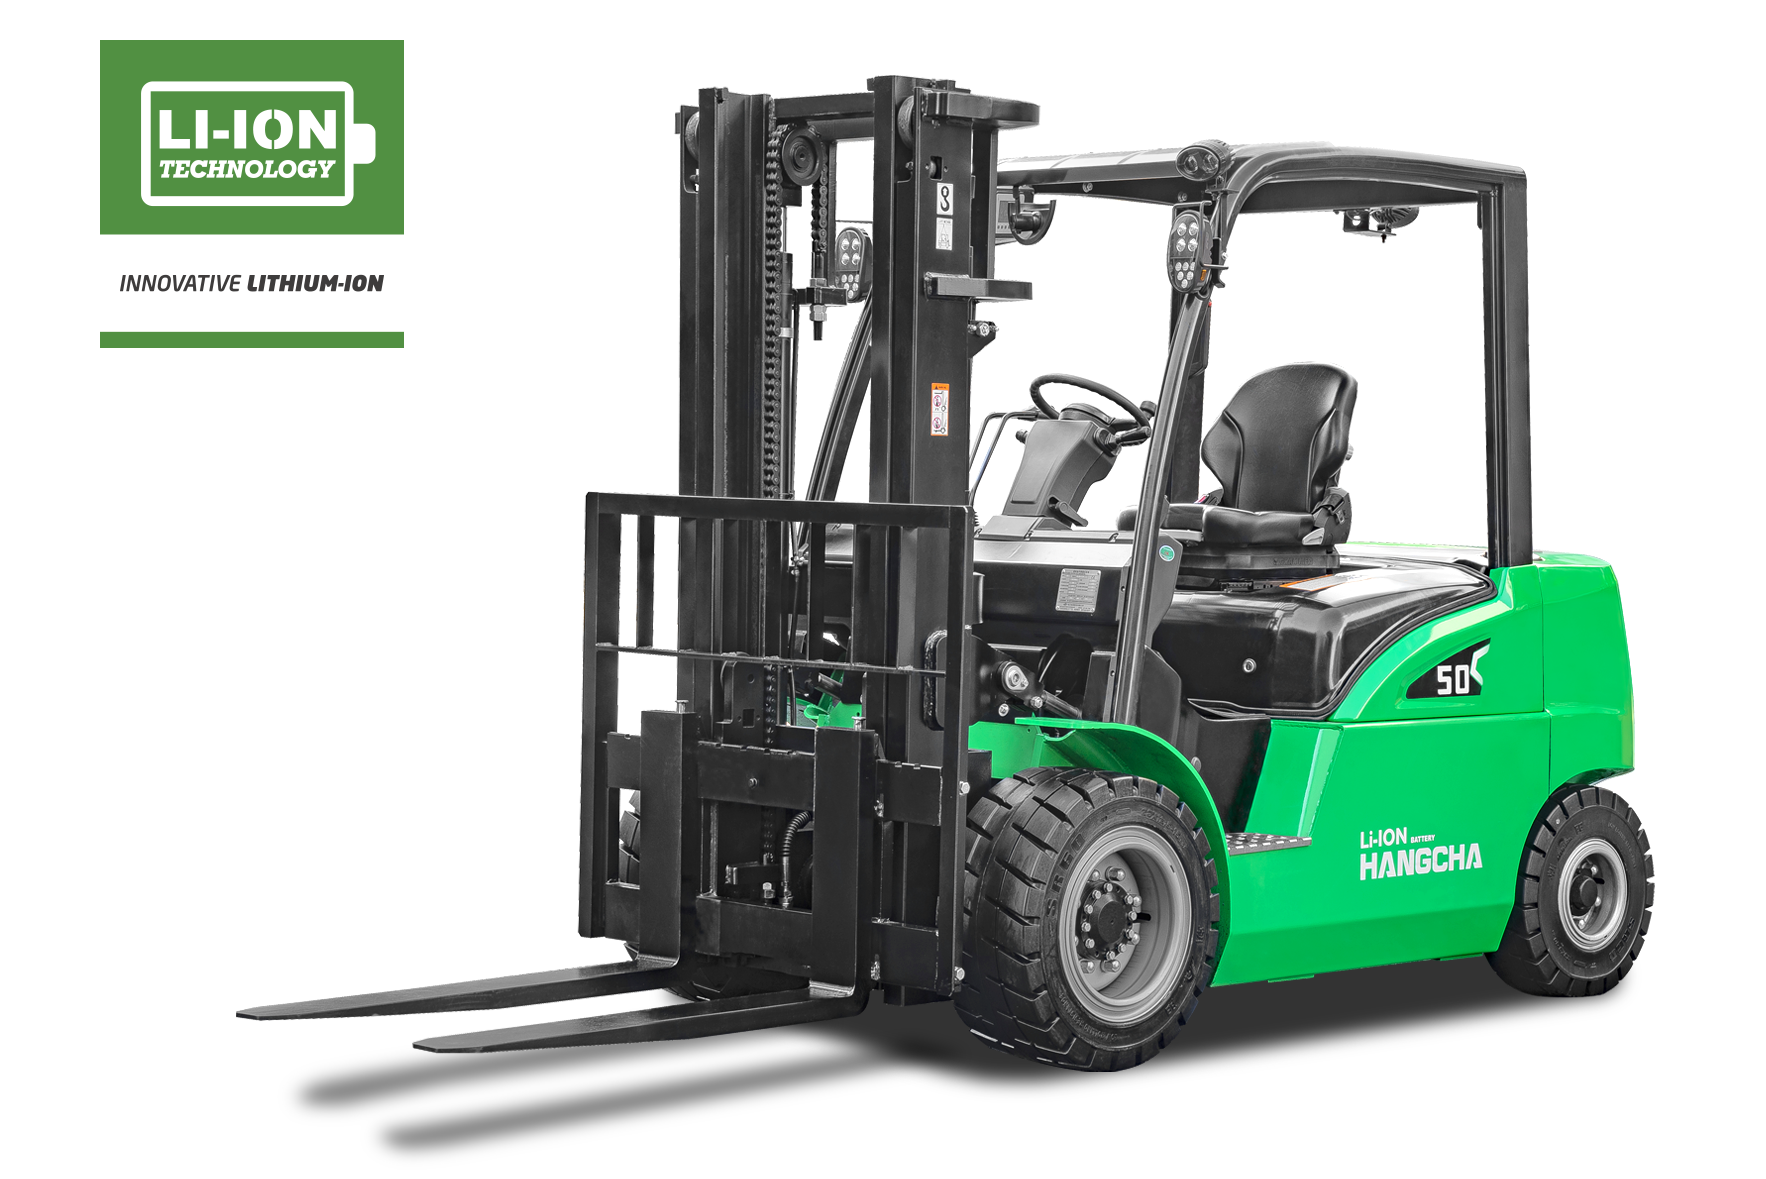 Electric Lithium-ion Pneumatic Tire Forklift 8,000-11,000lbs